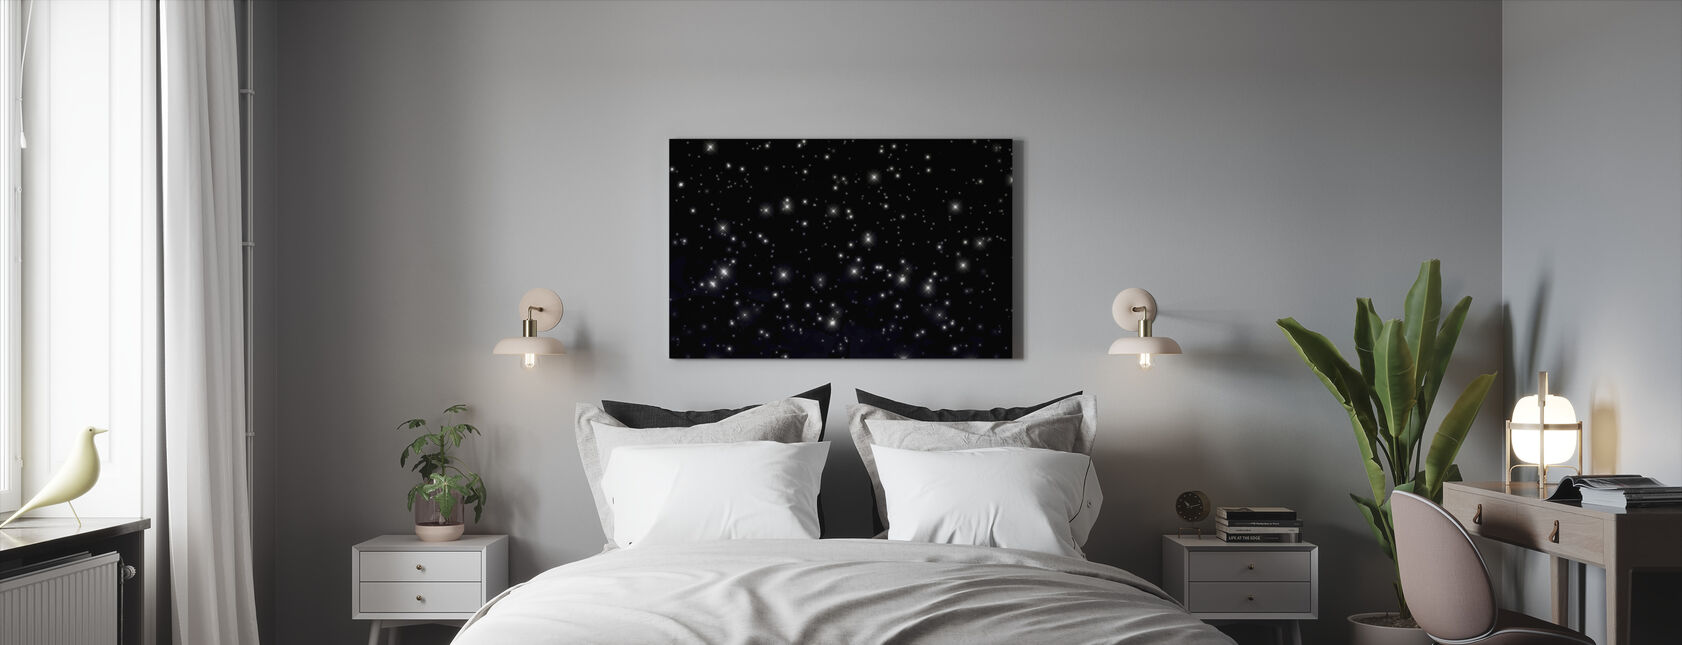 Starry Space - Canvas print - Bedroom